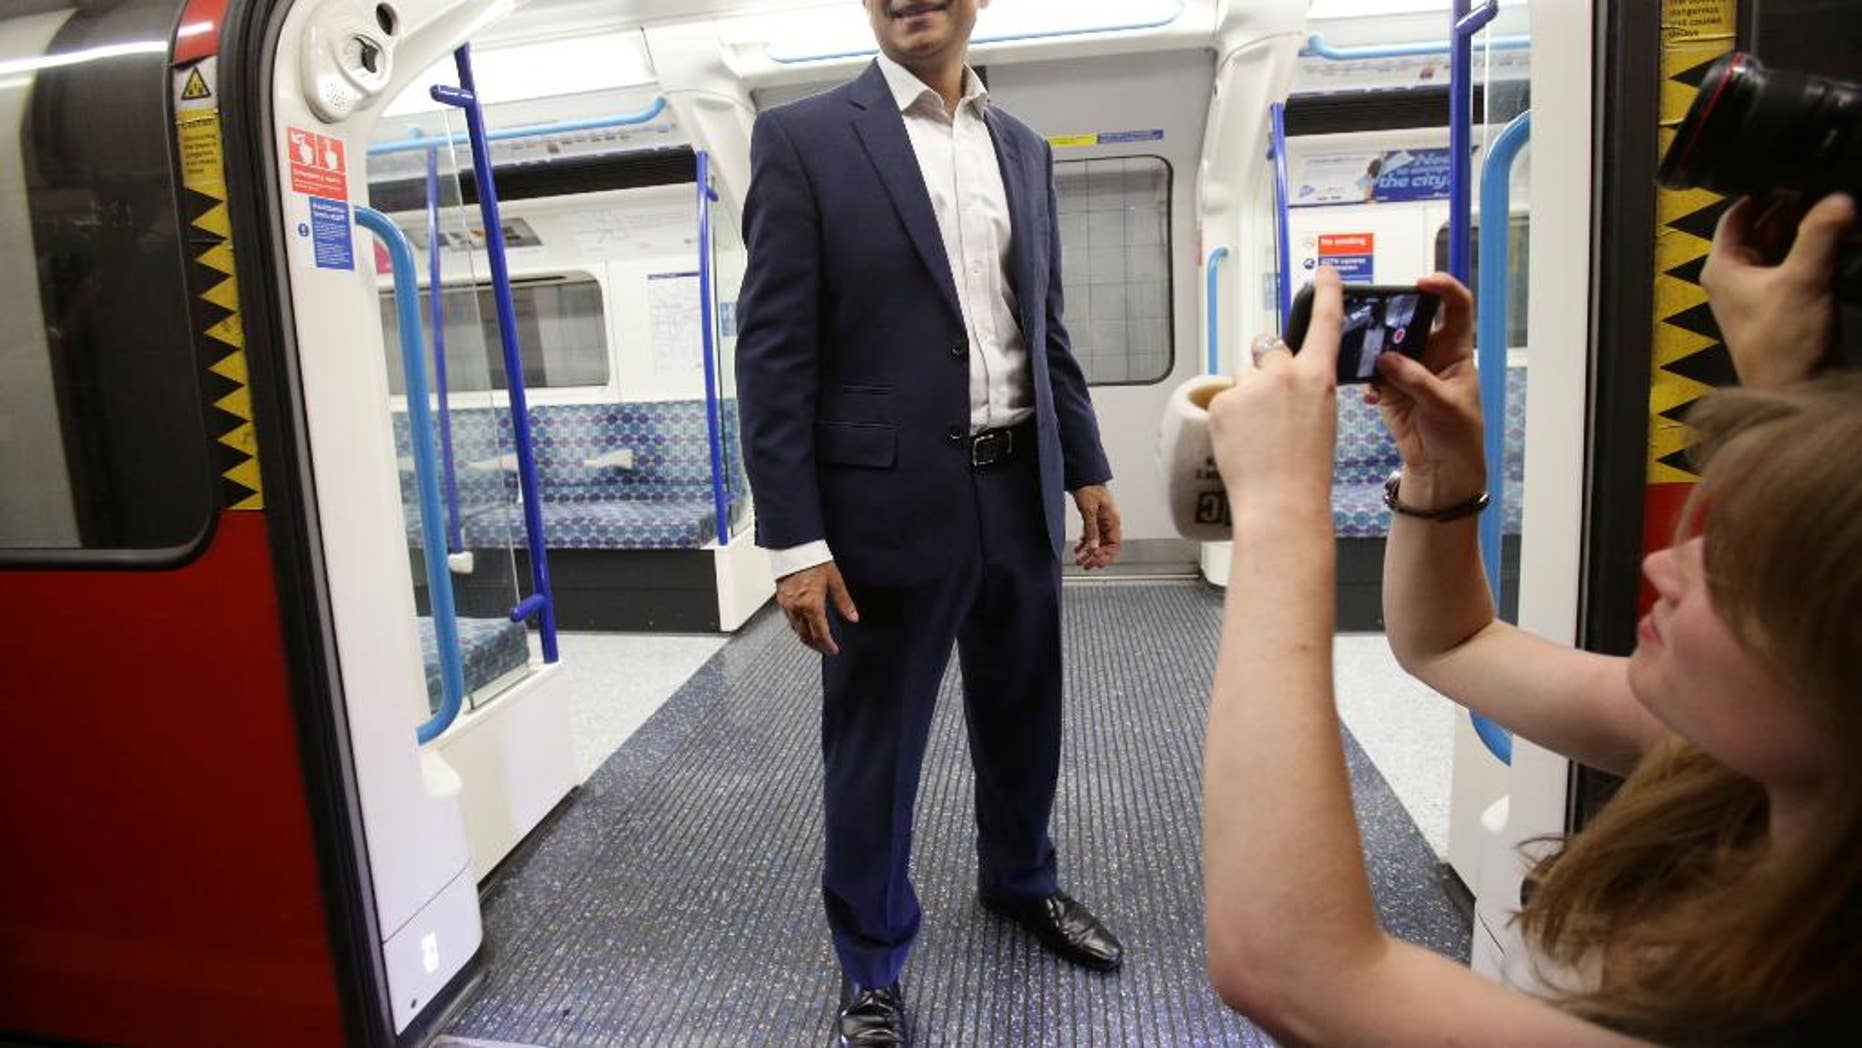 Mayor of London Sadiq Khan poses for the media on a Victoria line tube train carriage at Brixton Underground station in London during the launch of London's Night Tube Saturday, Aug. 20, 2016. The London Underground introduced limited overnight service Saturday, a move city leaders hope will make the British capital a truly 24-hour city and bolster the local economy. (Yui Mok/PA via AP)